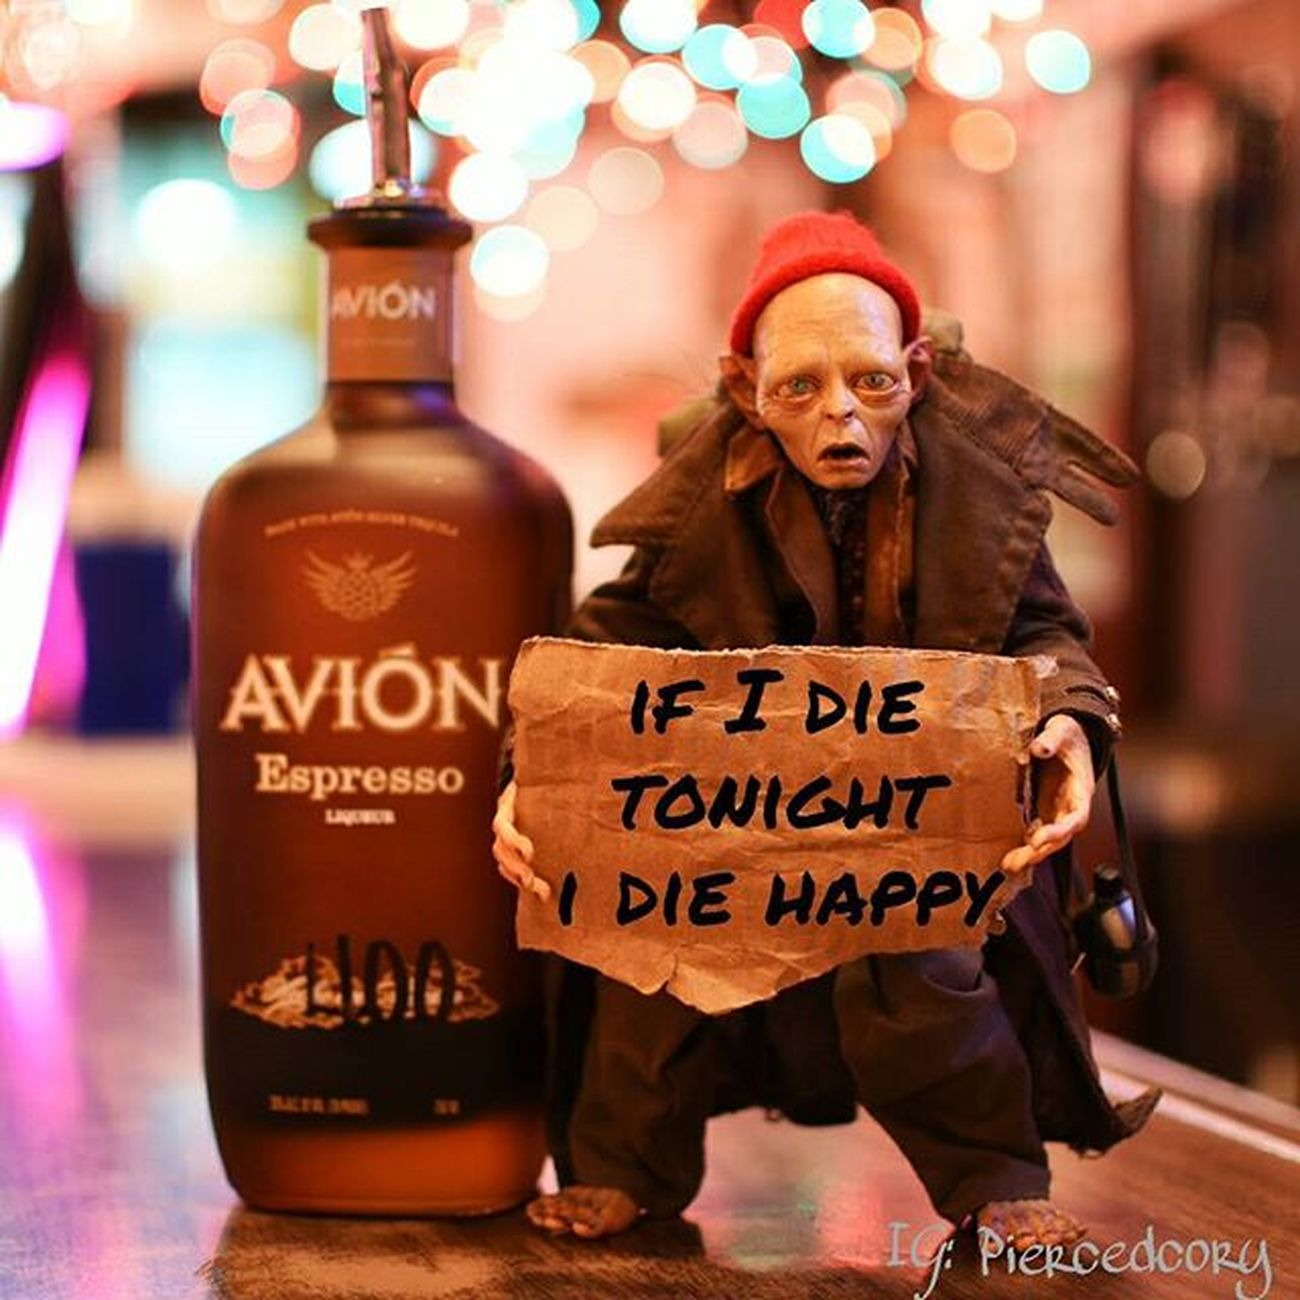 Espresso tequila!!l?! Are you kidding me! Drunktoys Smeagol Neca Aviontequila